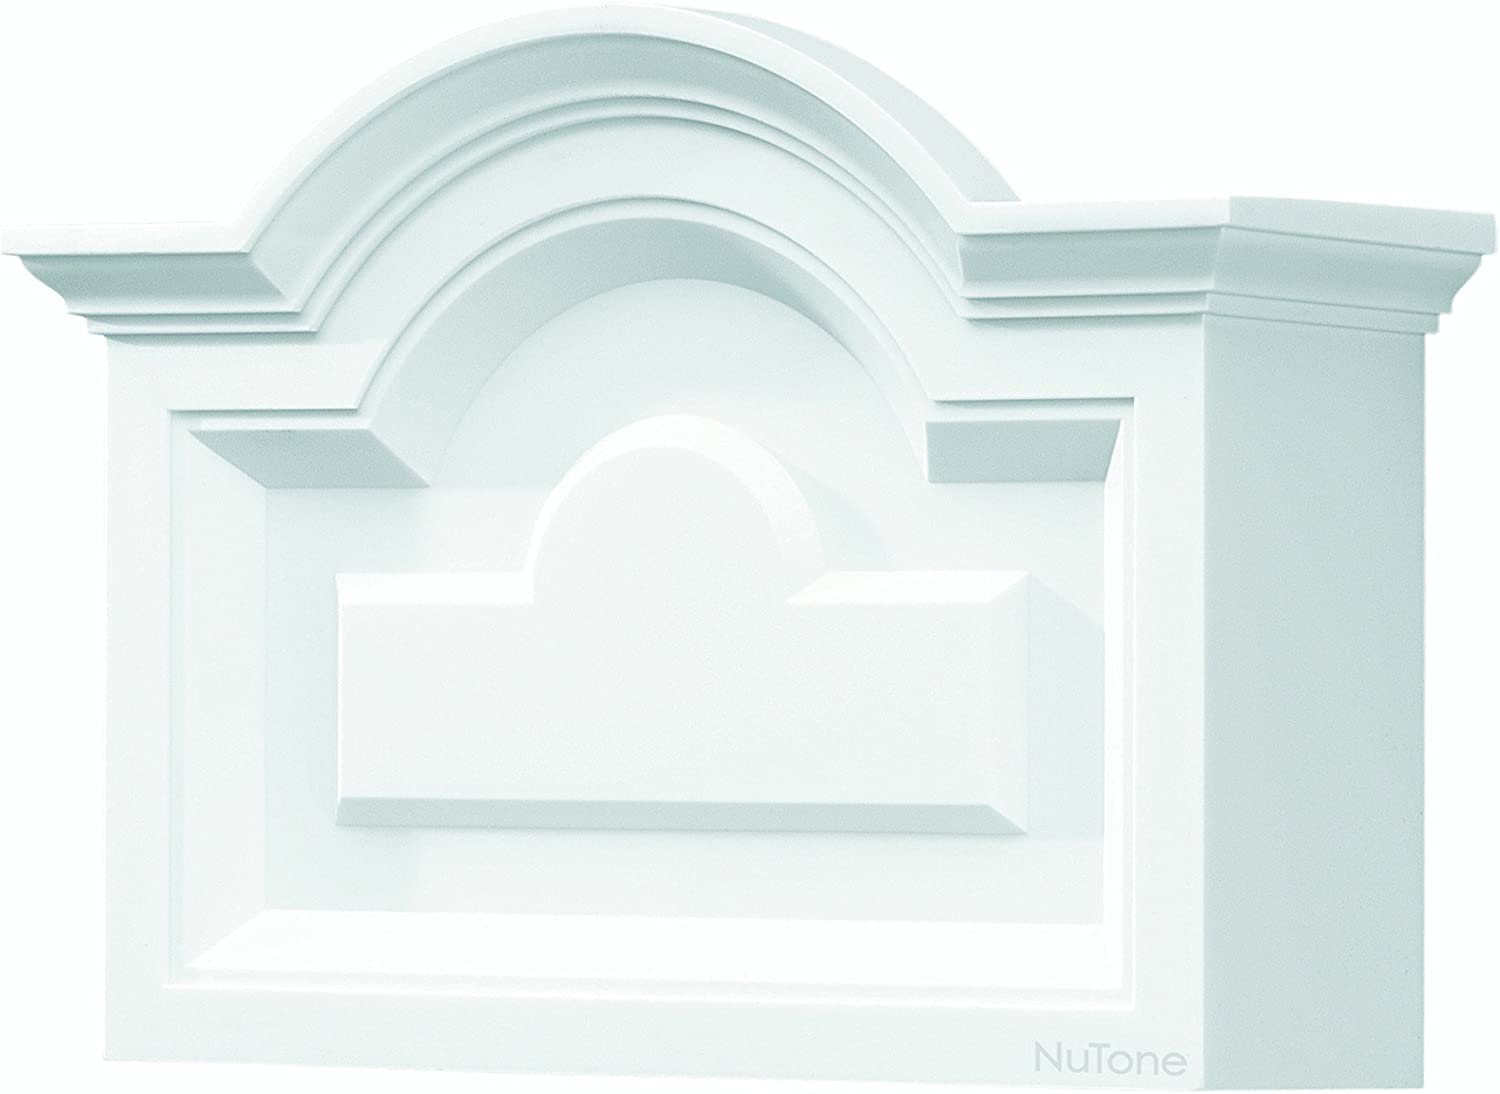 NuTone LA140WH Classic Arched Top Design Decorative Wired Two-Note Door Chime, White